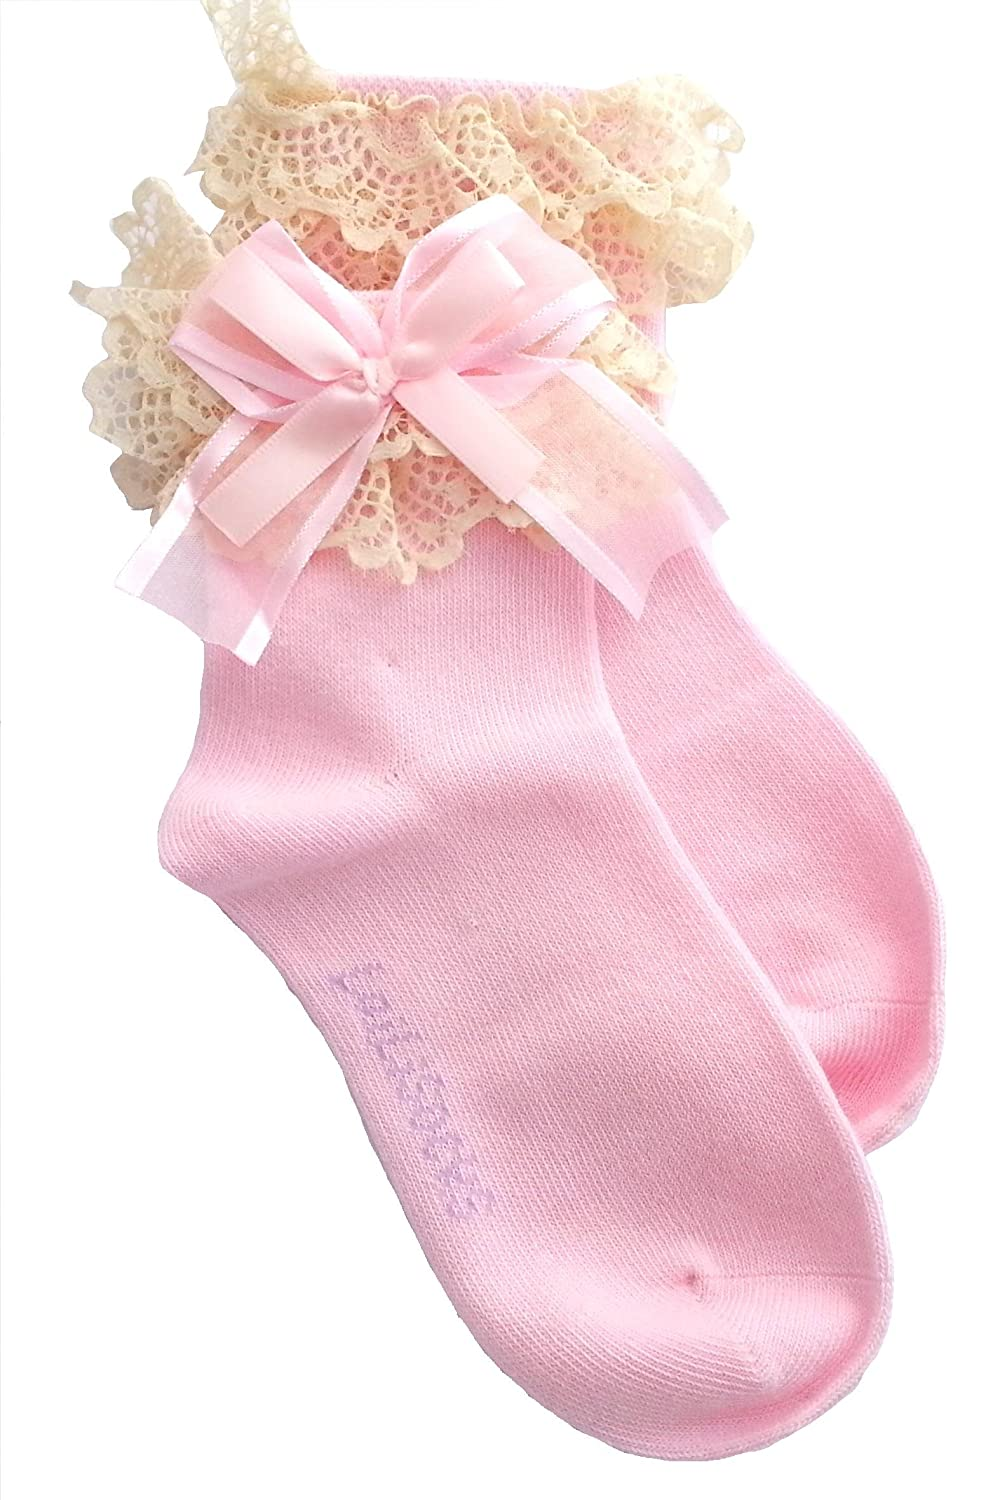 Baby/Girl Pack of 2 Super Soft Lace Frilly PINK Ankle Socks Age 1 2 3 4 5 6 7 8 9 10